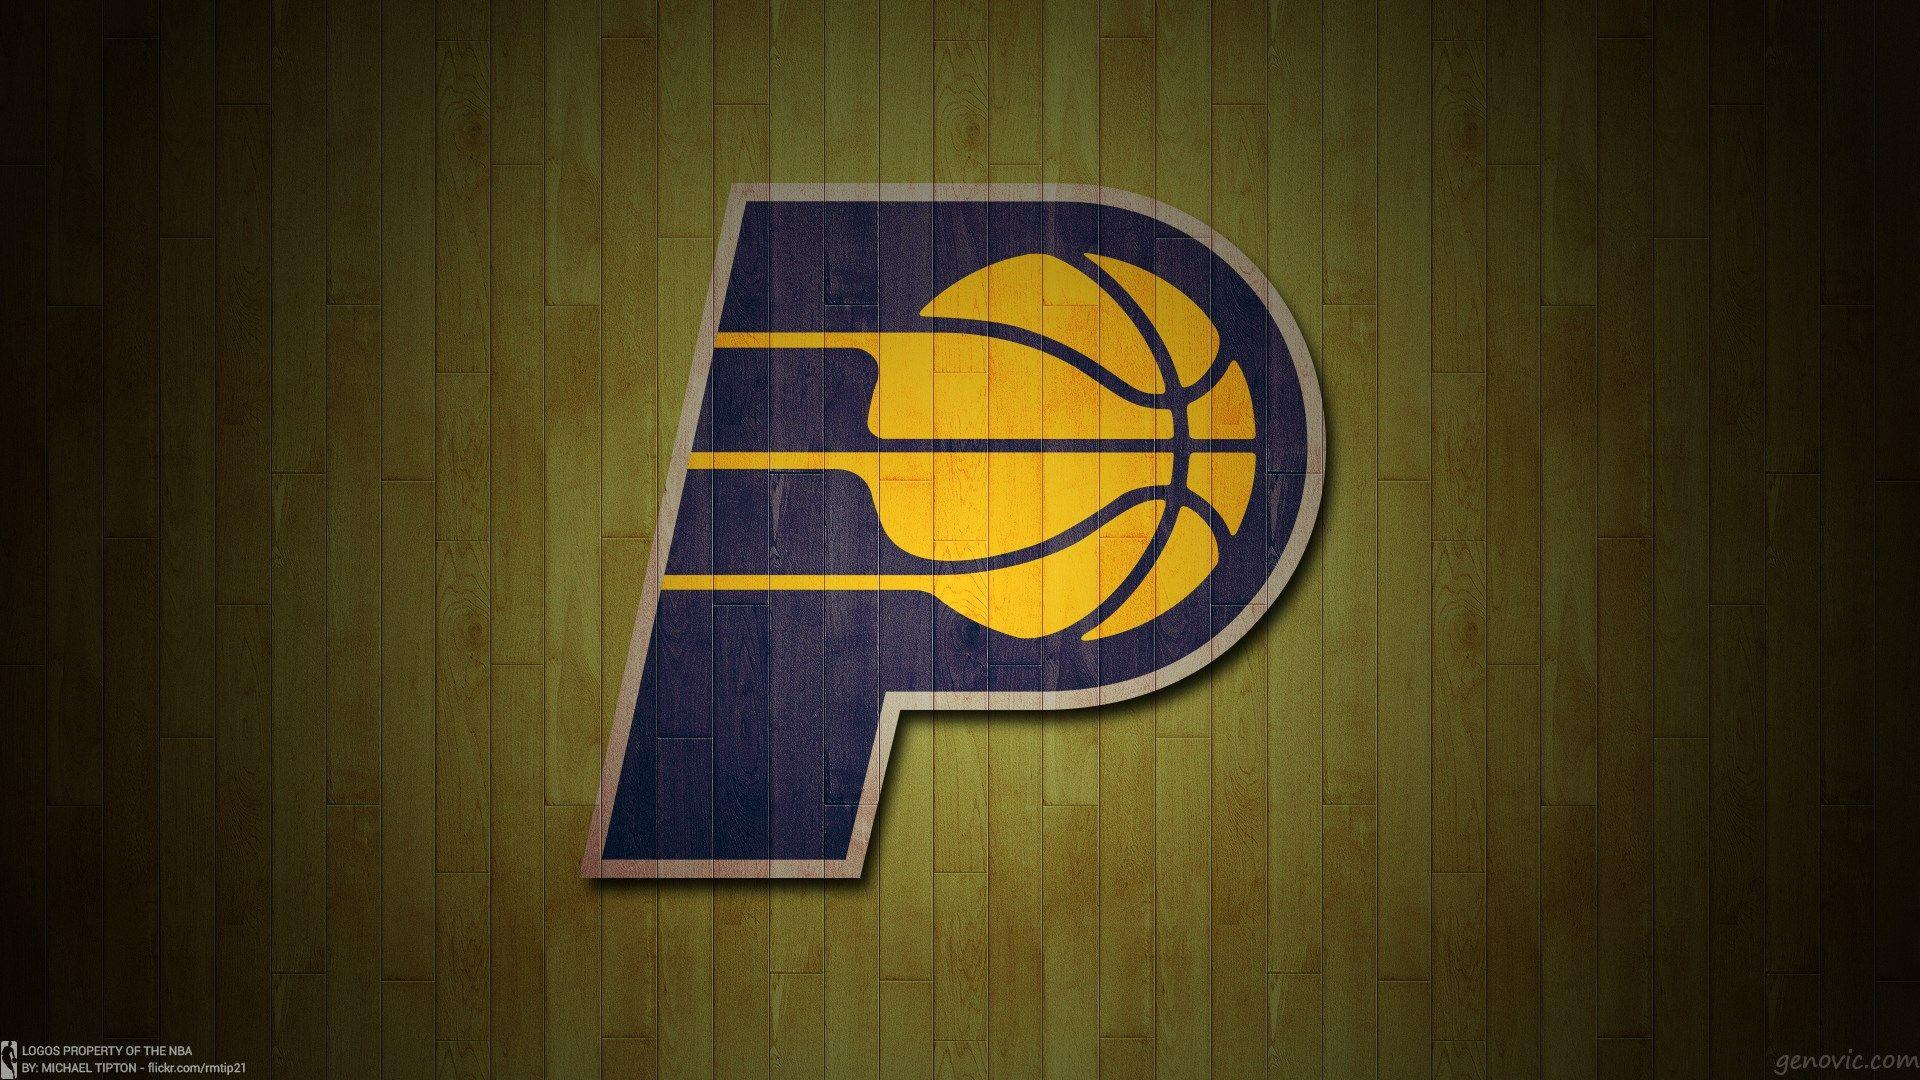 Indiana Pacers Wallpaper, 43+ Best & Inspirational High Quality ...